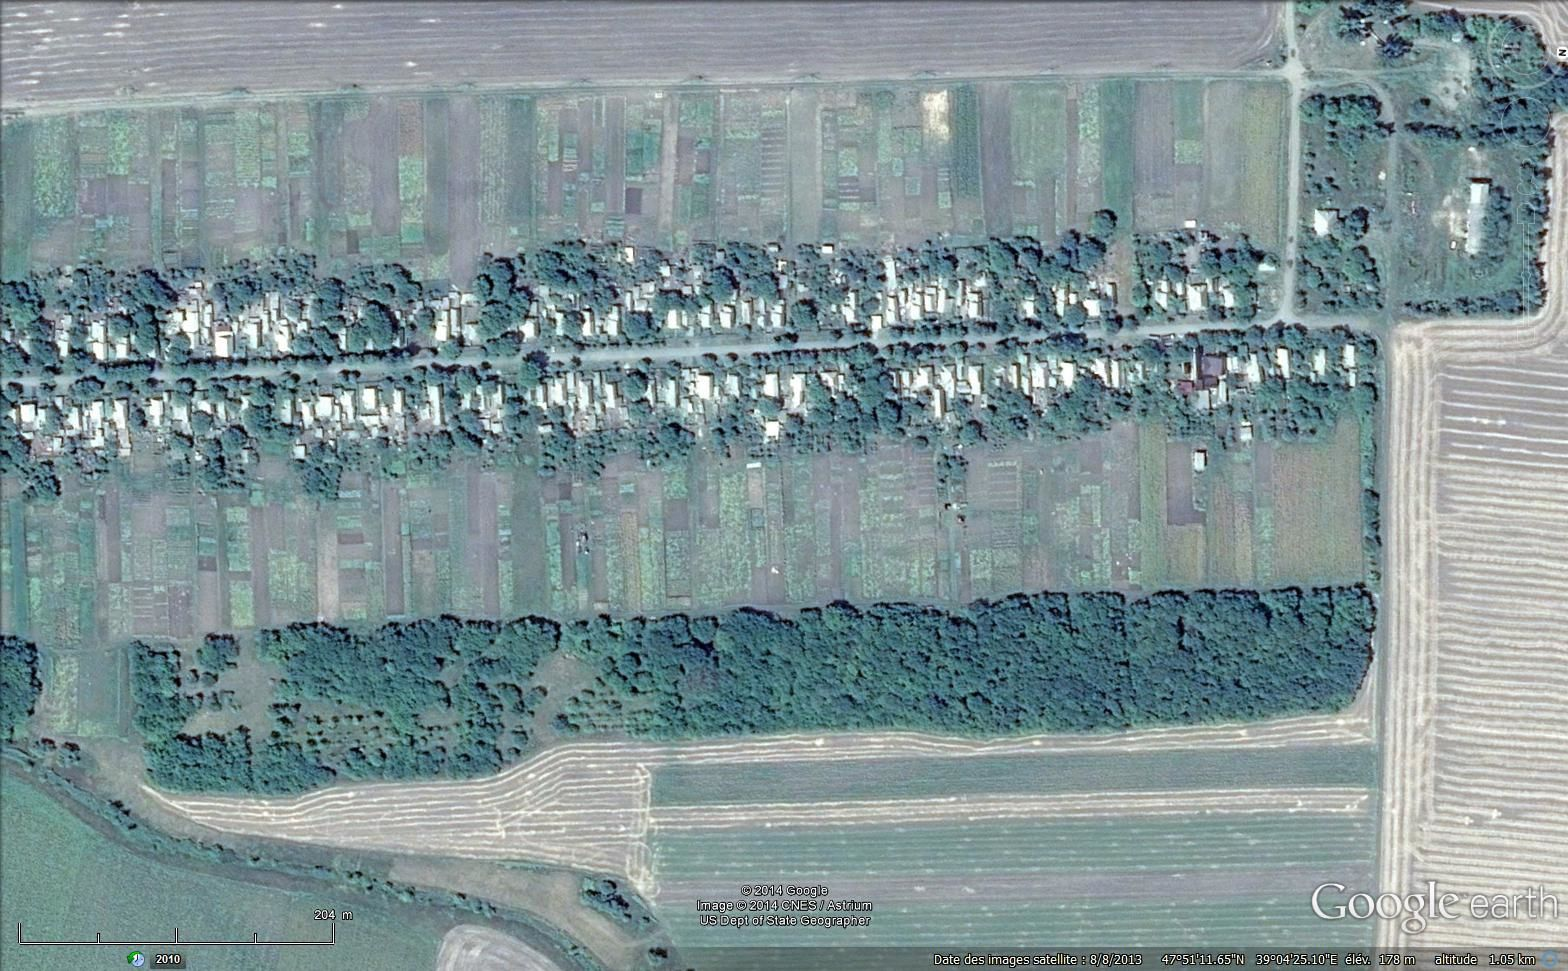 Google earth : 1 et 2. Villages-rues du Donbass - 3. La lisière (à Donetsk )